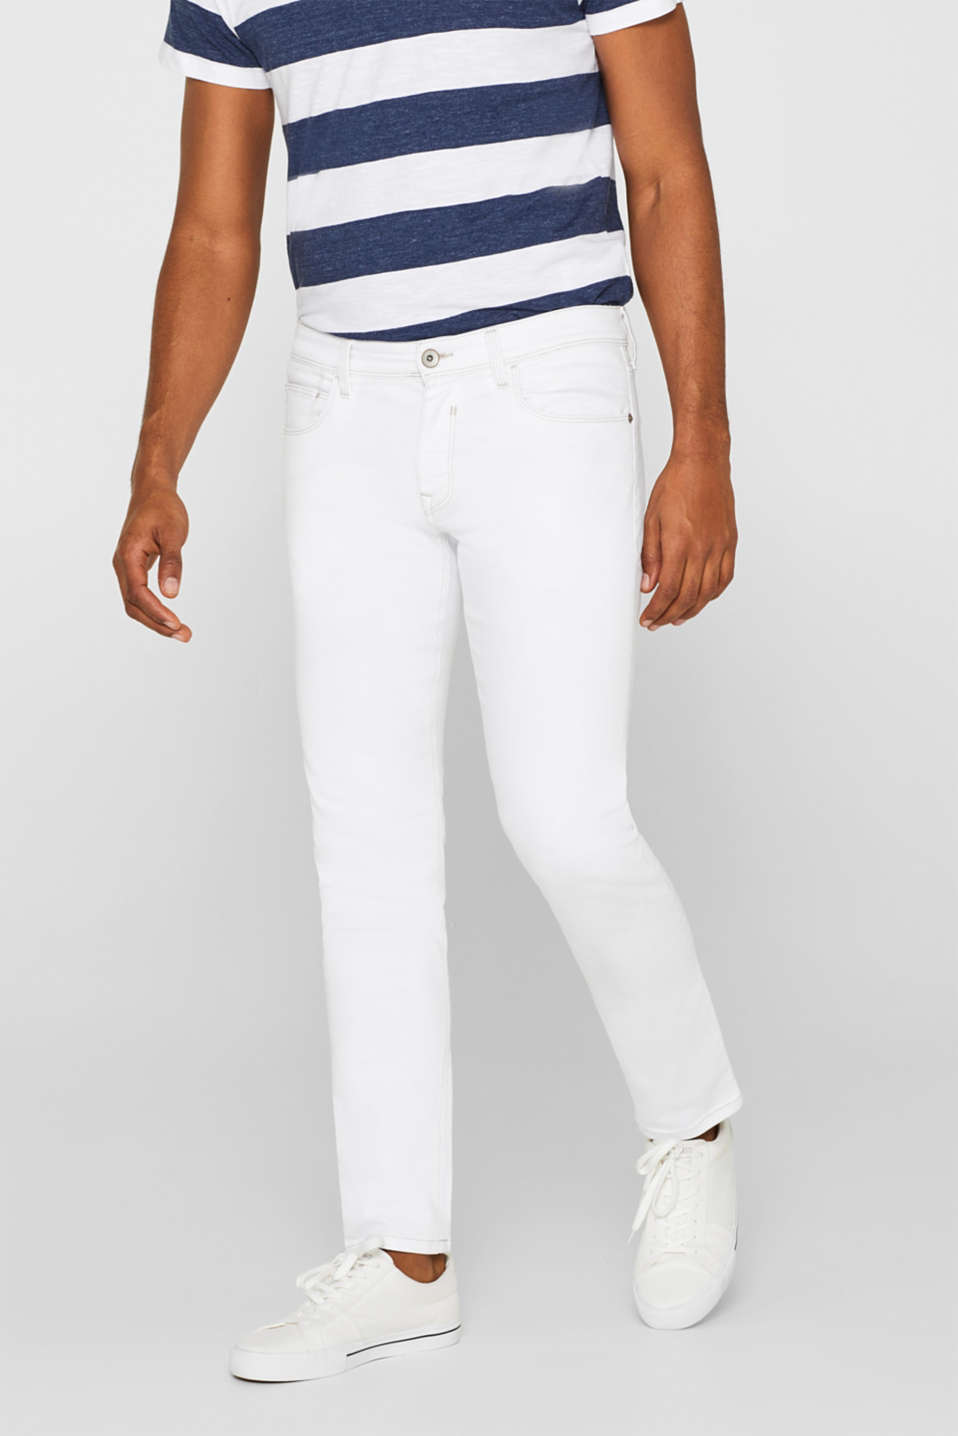 Esprit - Stretch jeans containing organic cotton